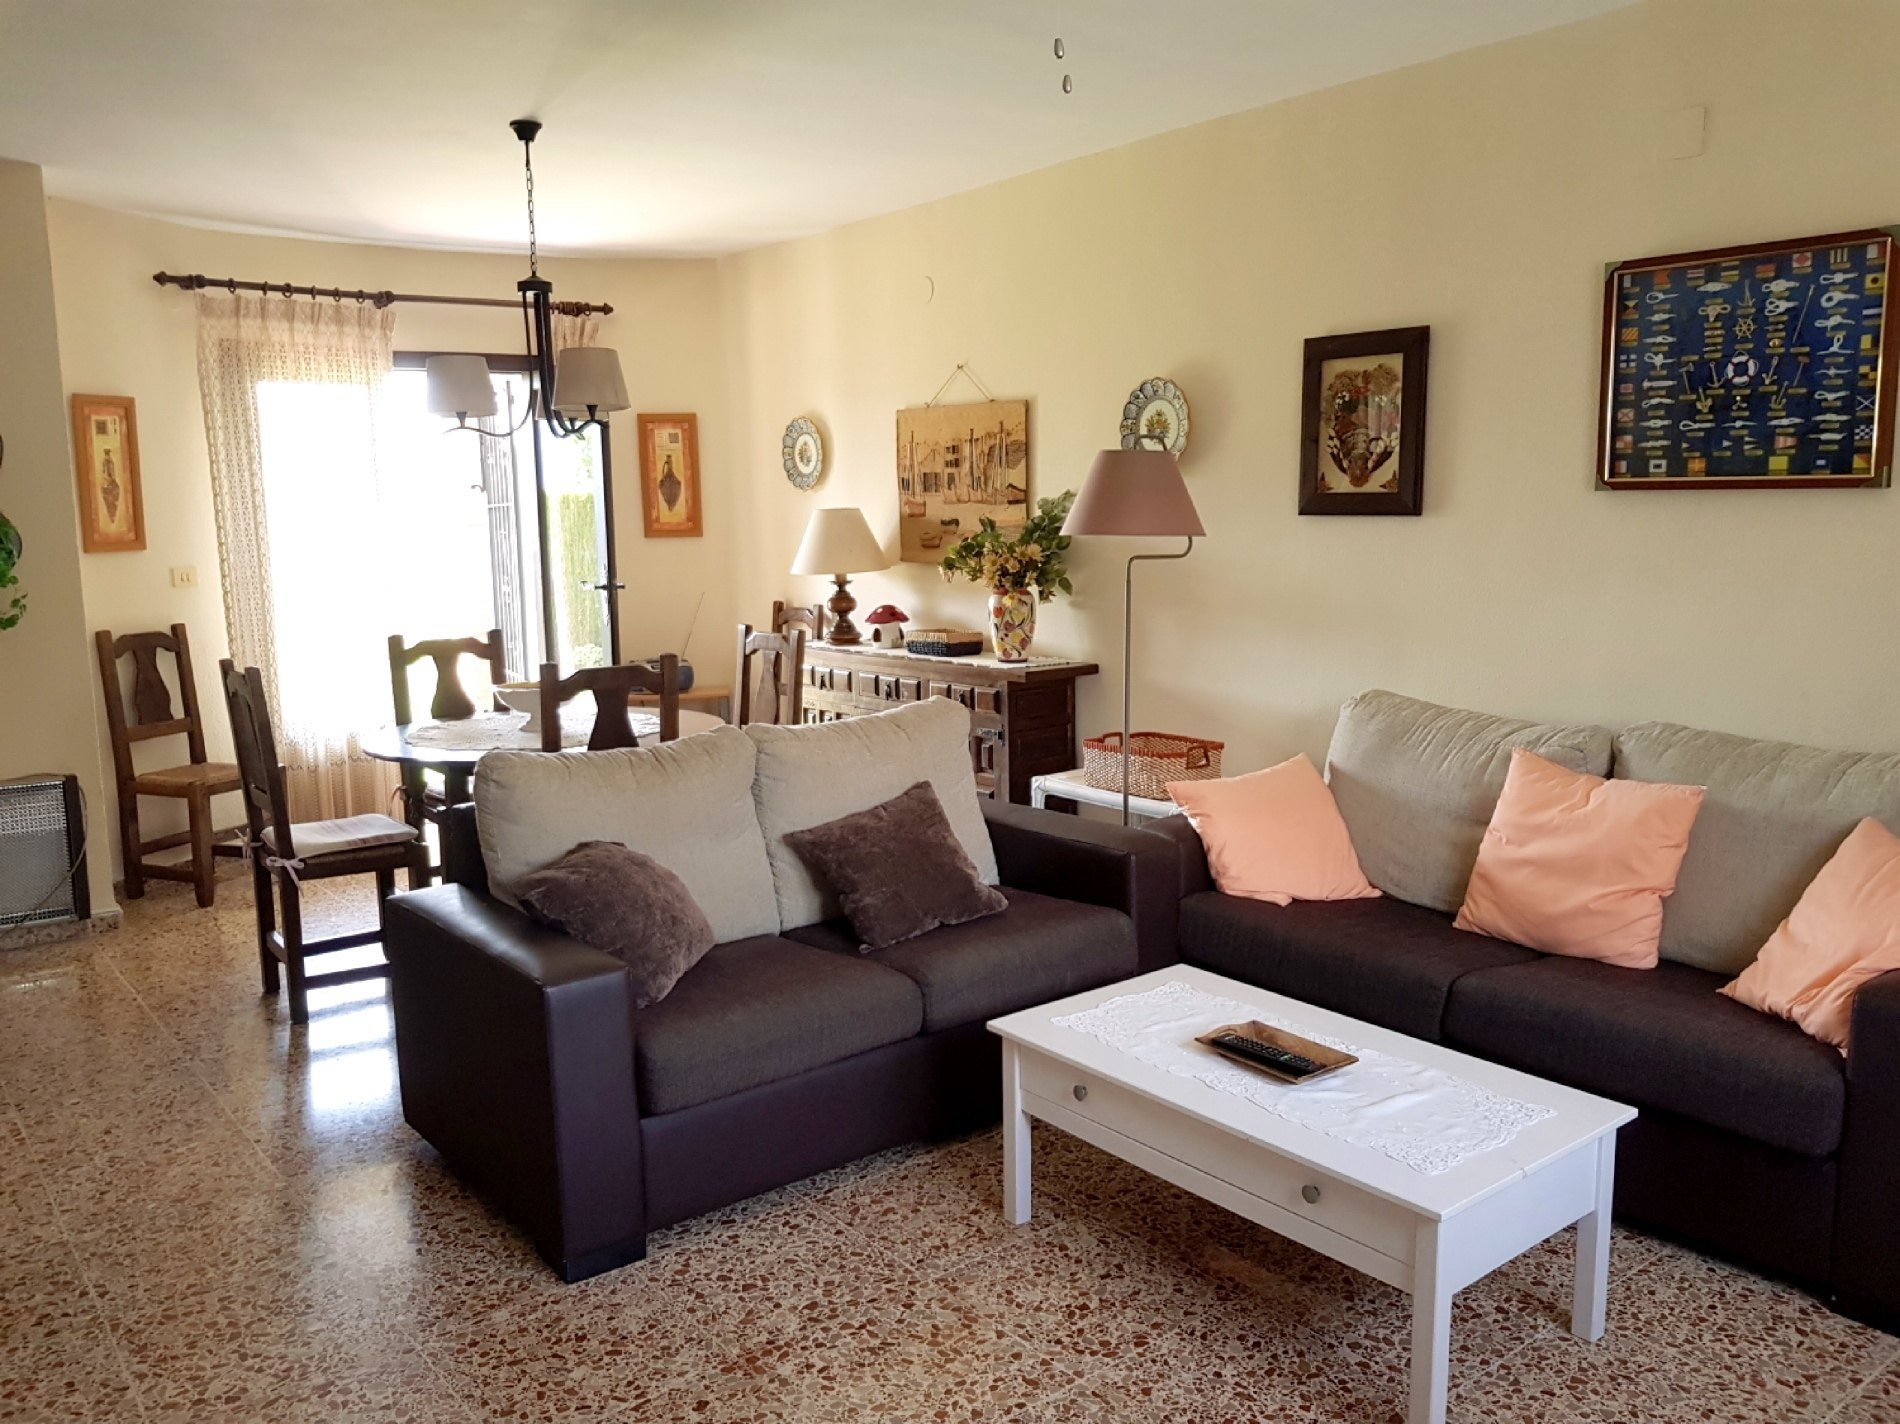 TOWNHOUSE NEAR THE BEACH IN DENIA